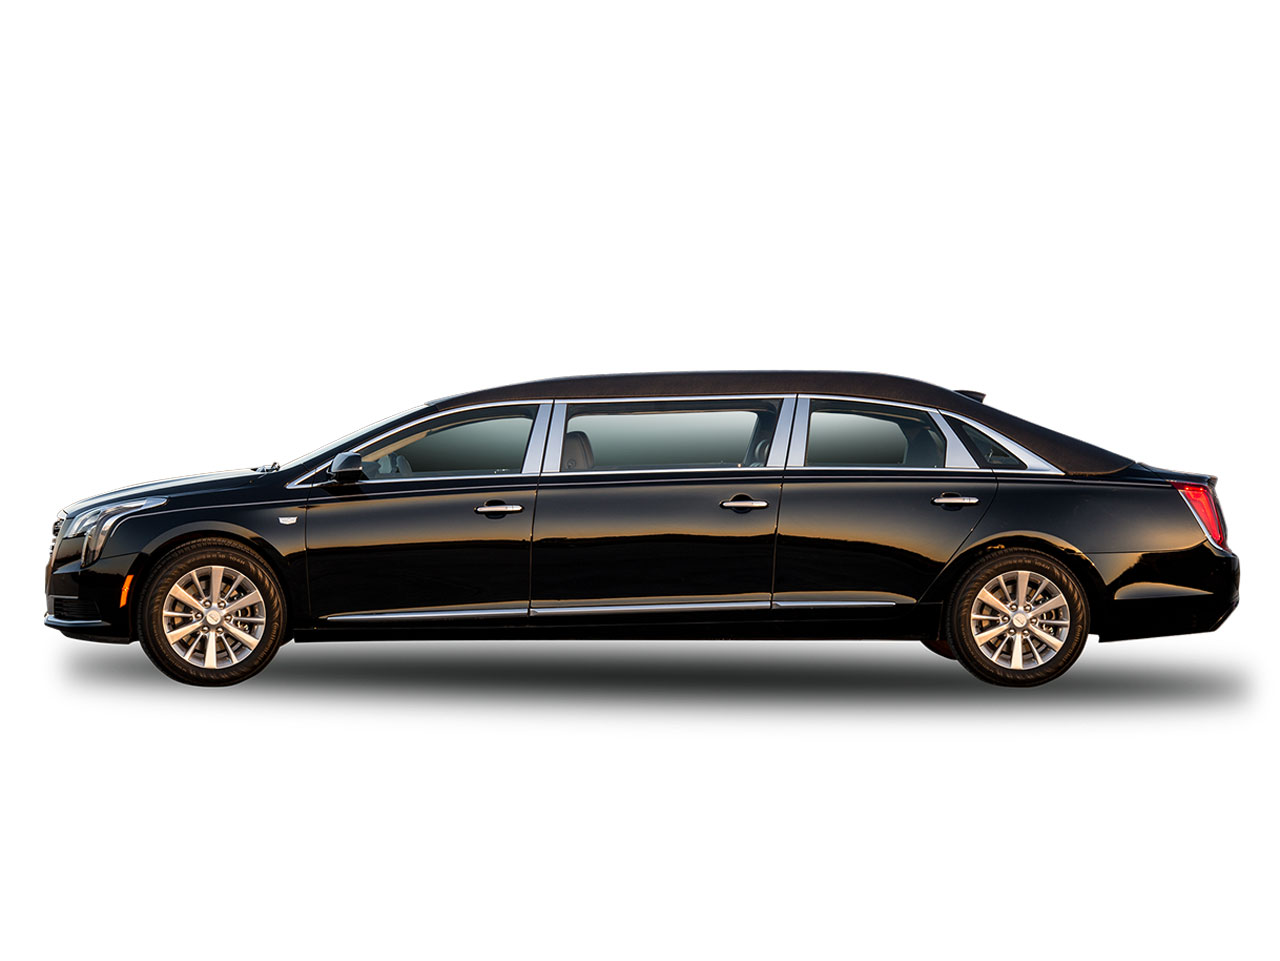 2019 Platinum Coach Six Door Limousine 4